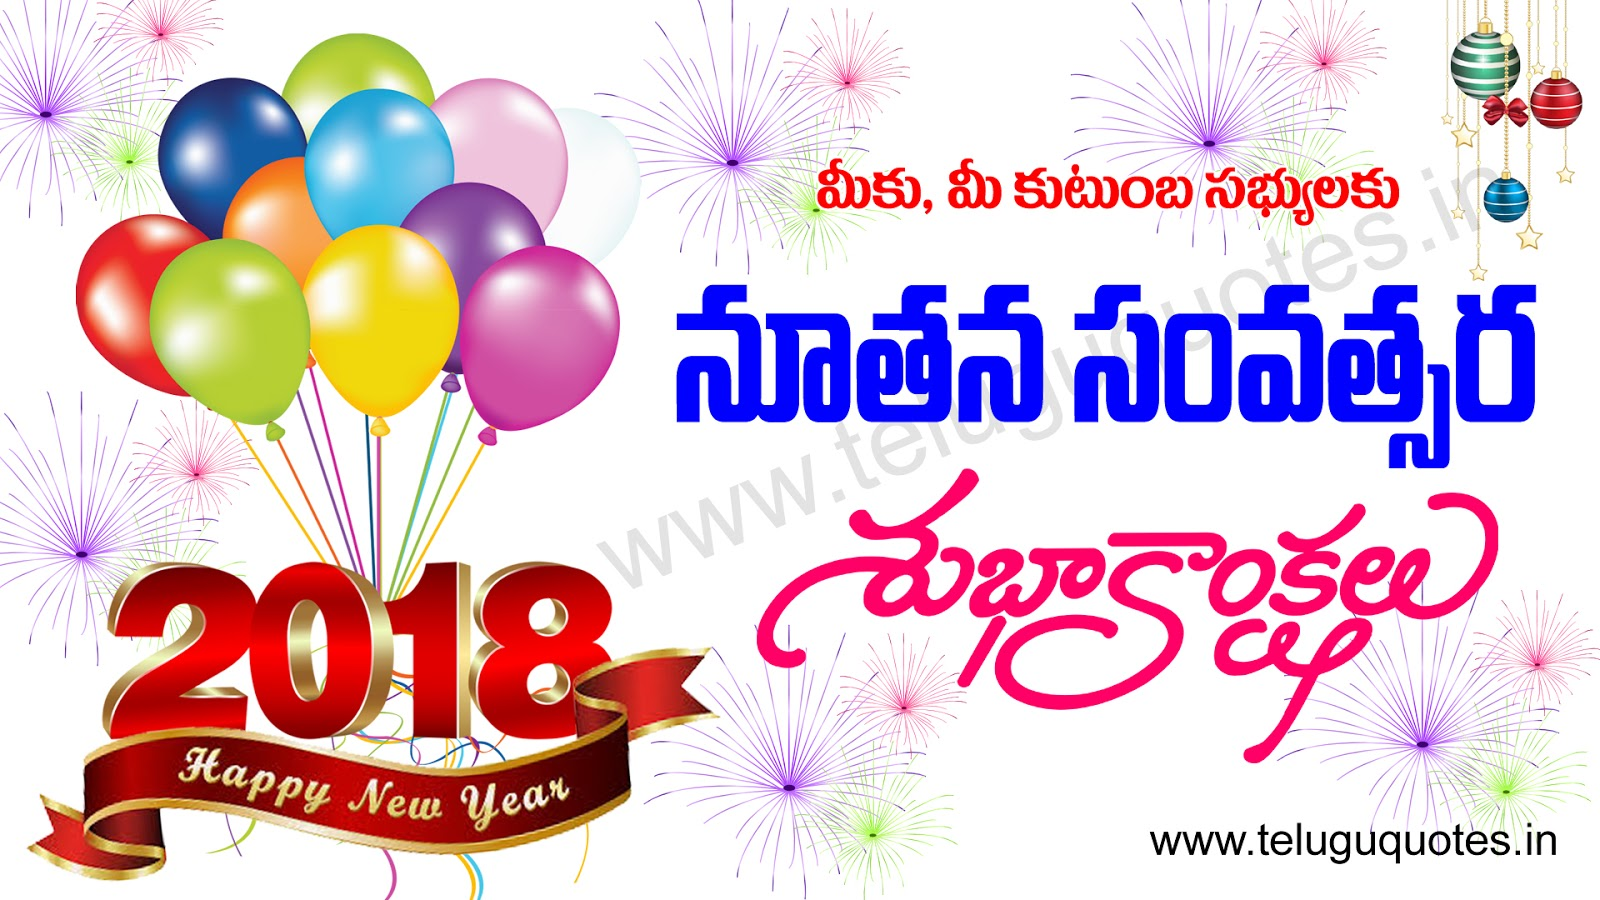 Happy New Year Images 2018 In Telugu Dragonsfootball17